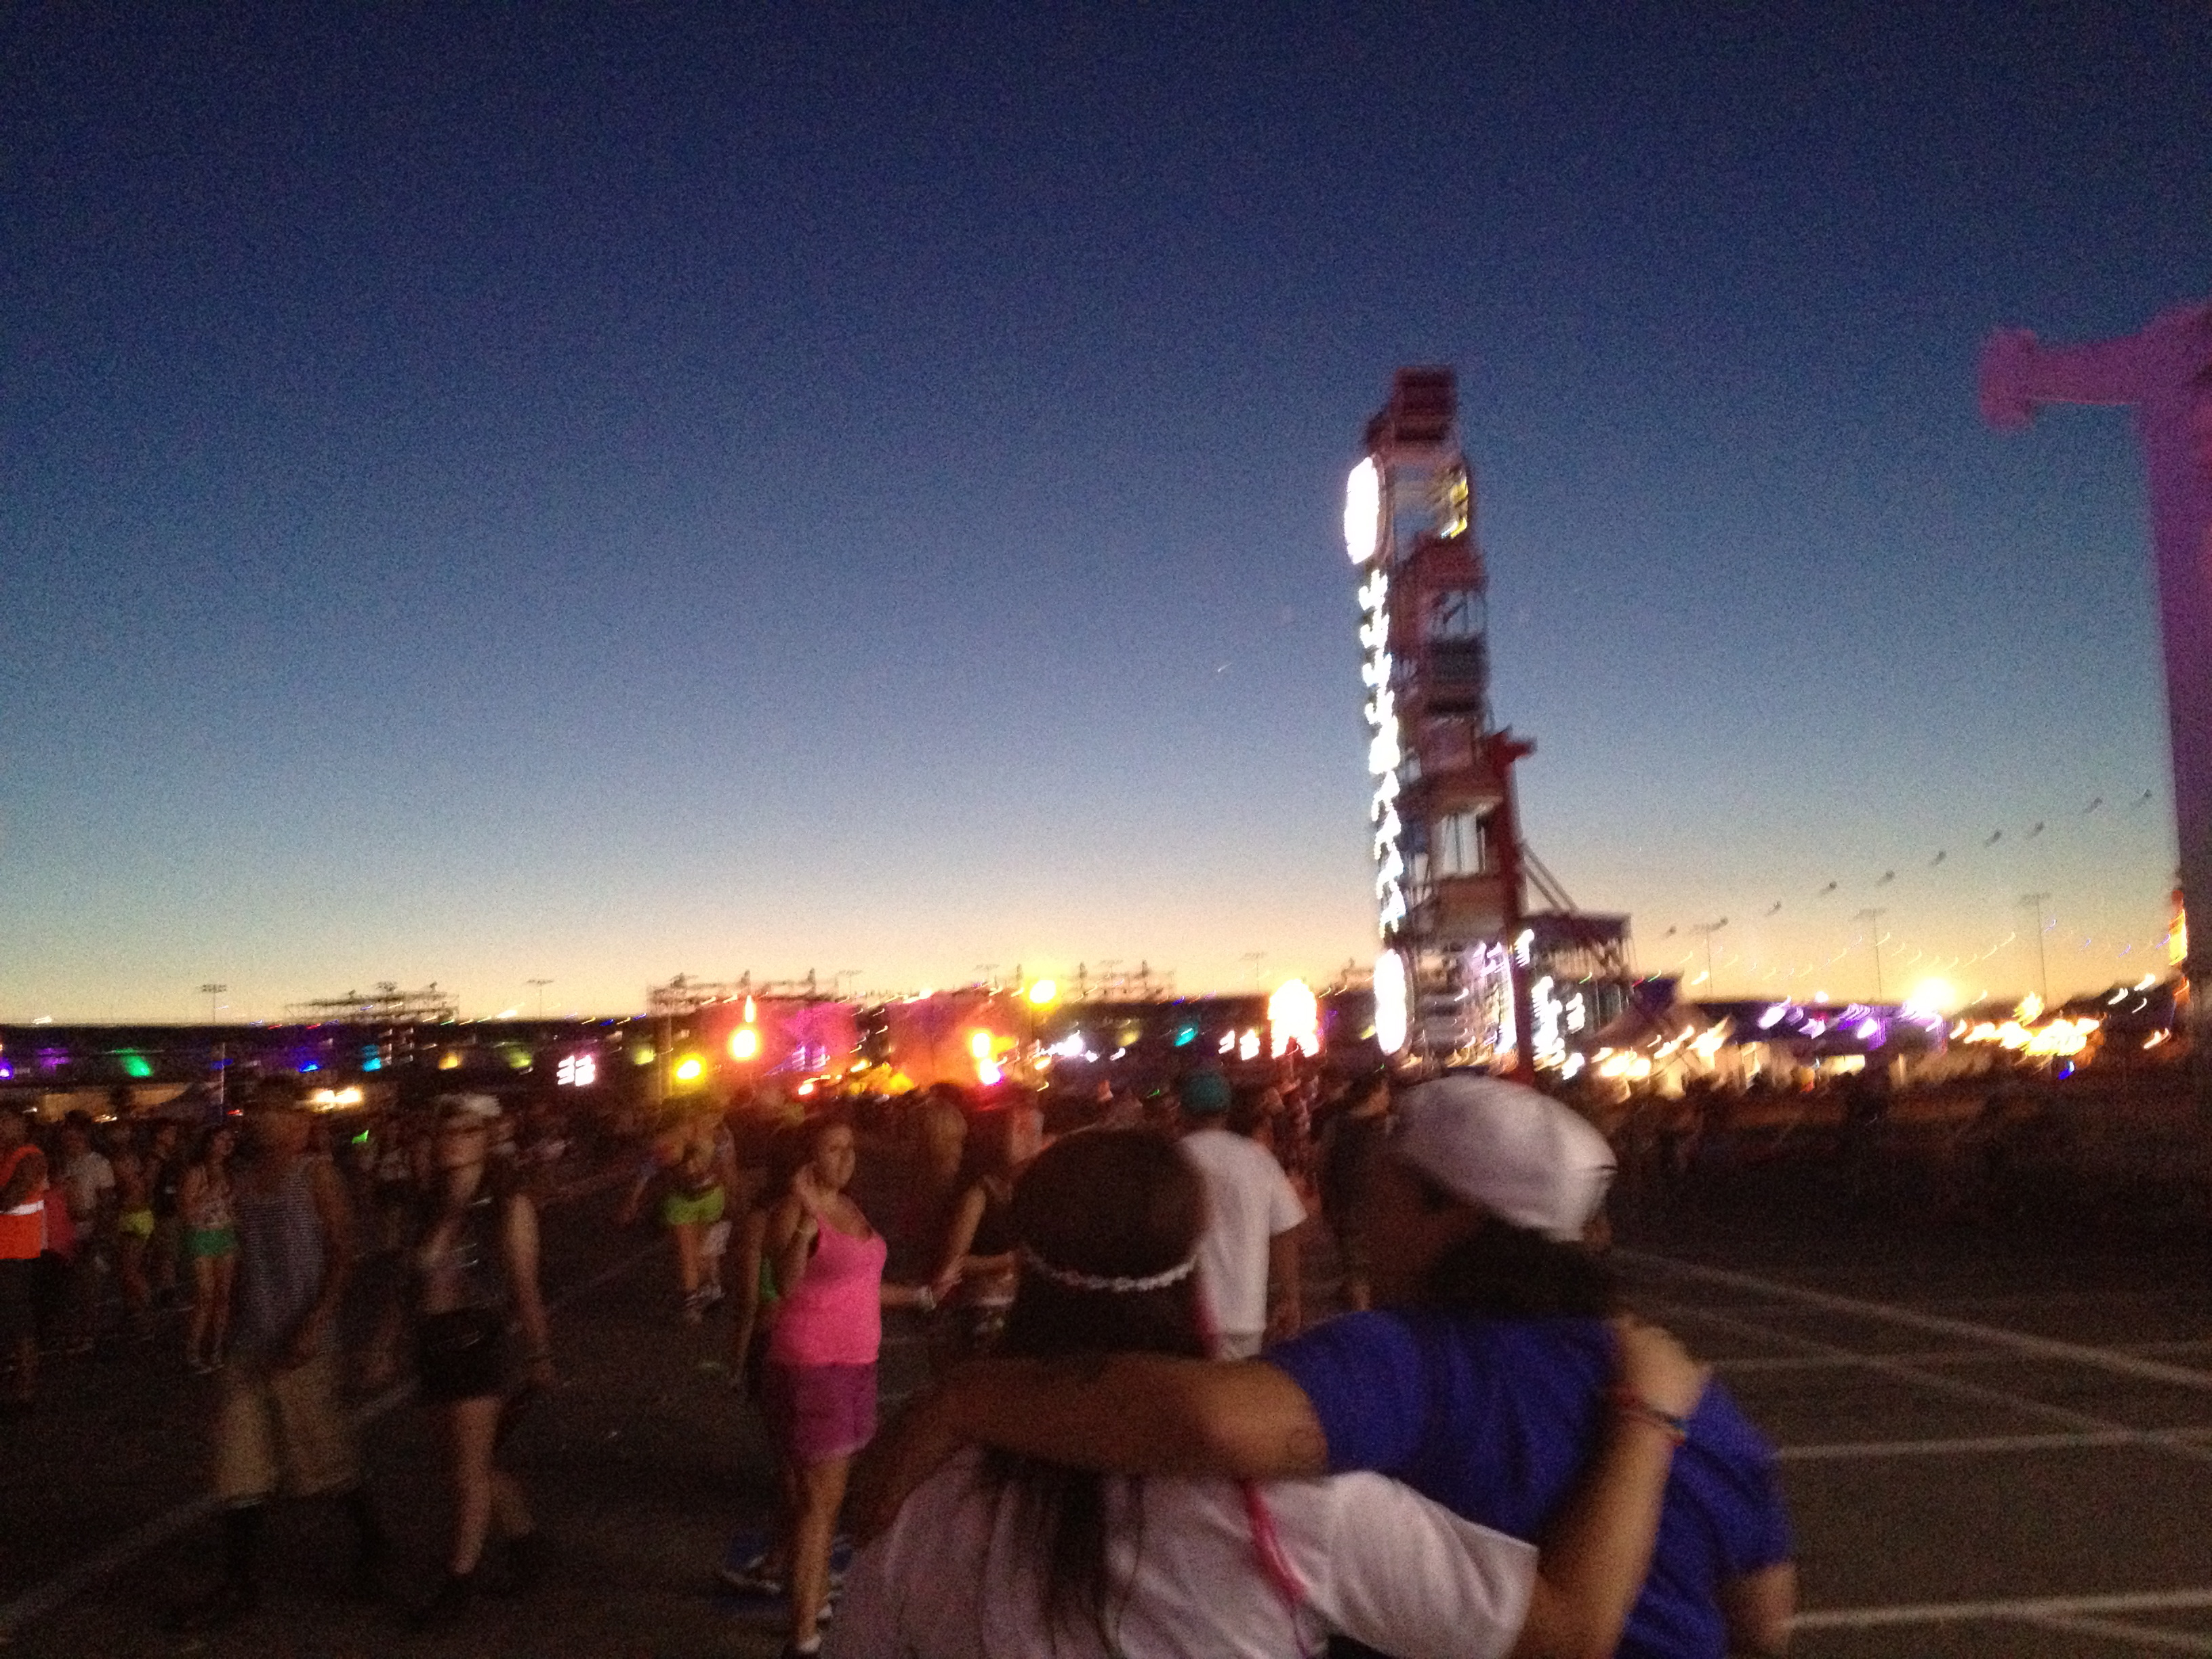 Sunrise at Electric Daisy Carnival